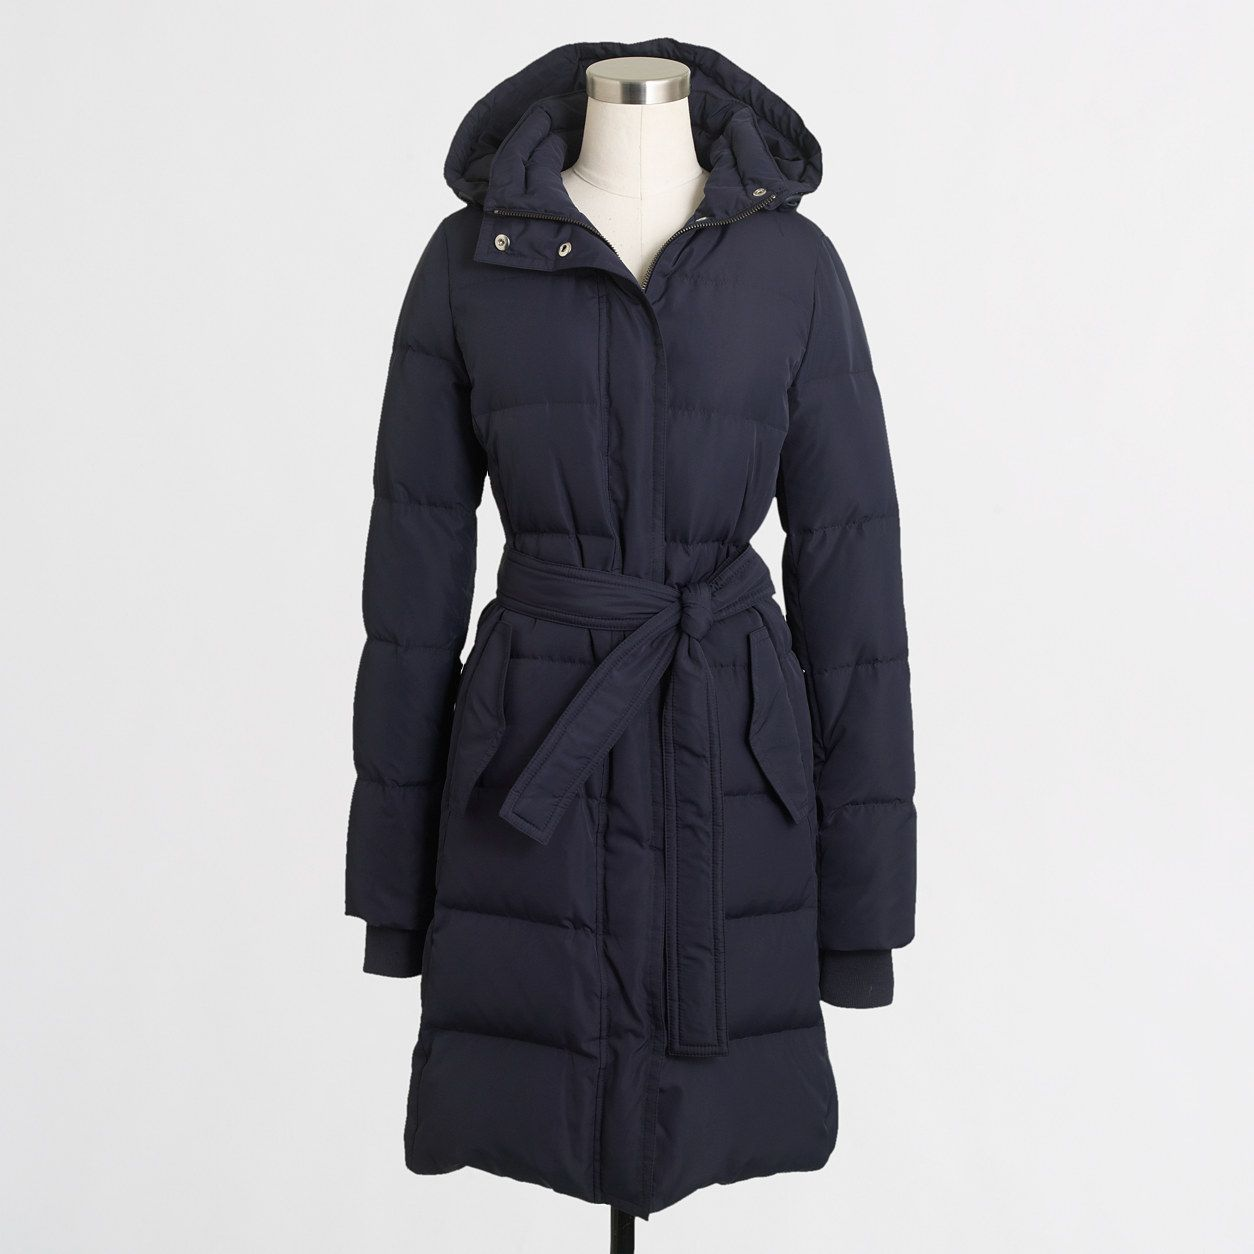 1ca5834a1 Factory long belted puffer jacket : Outerwear | J.Crew Factory ...